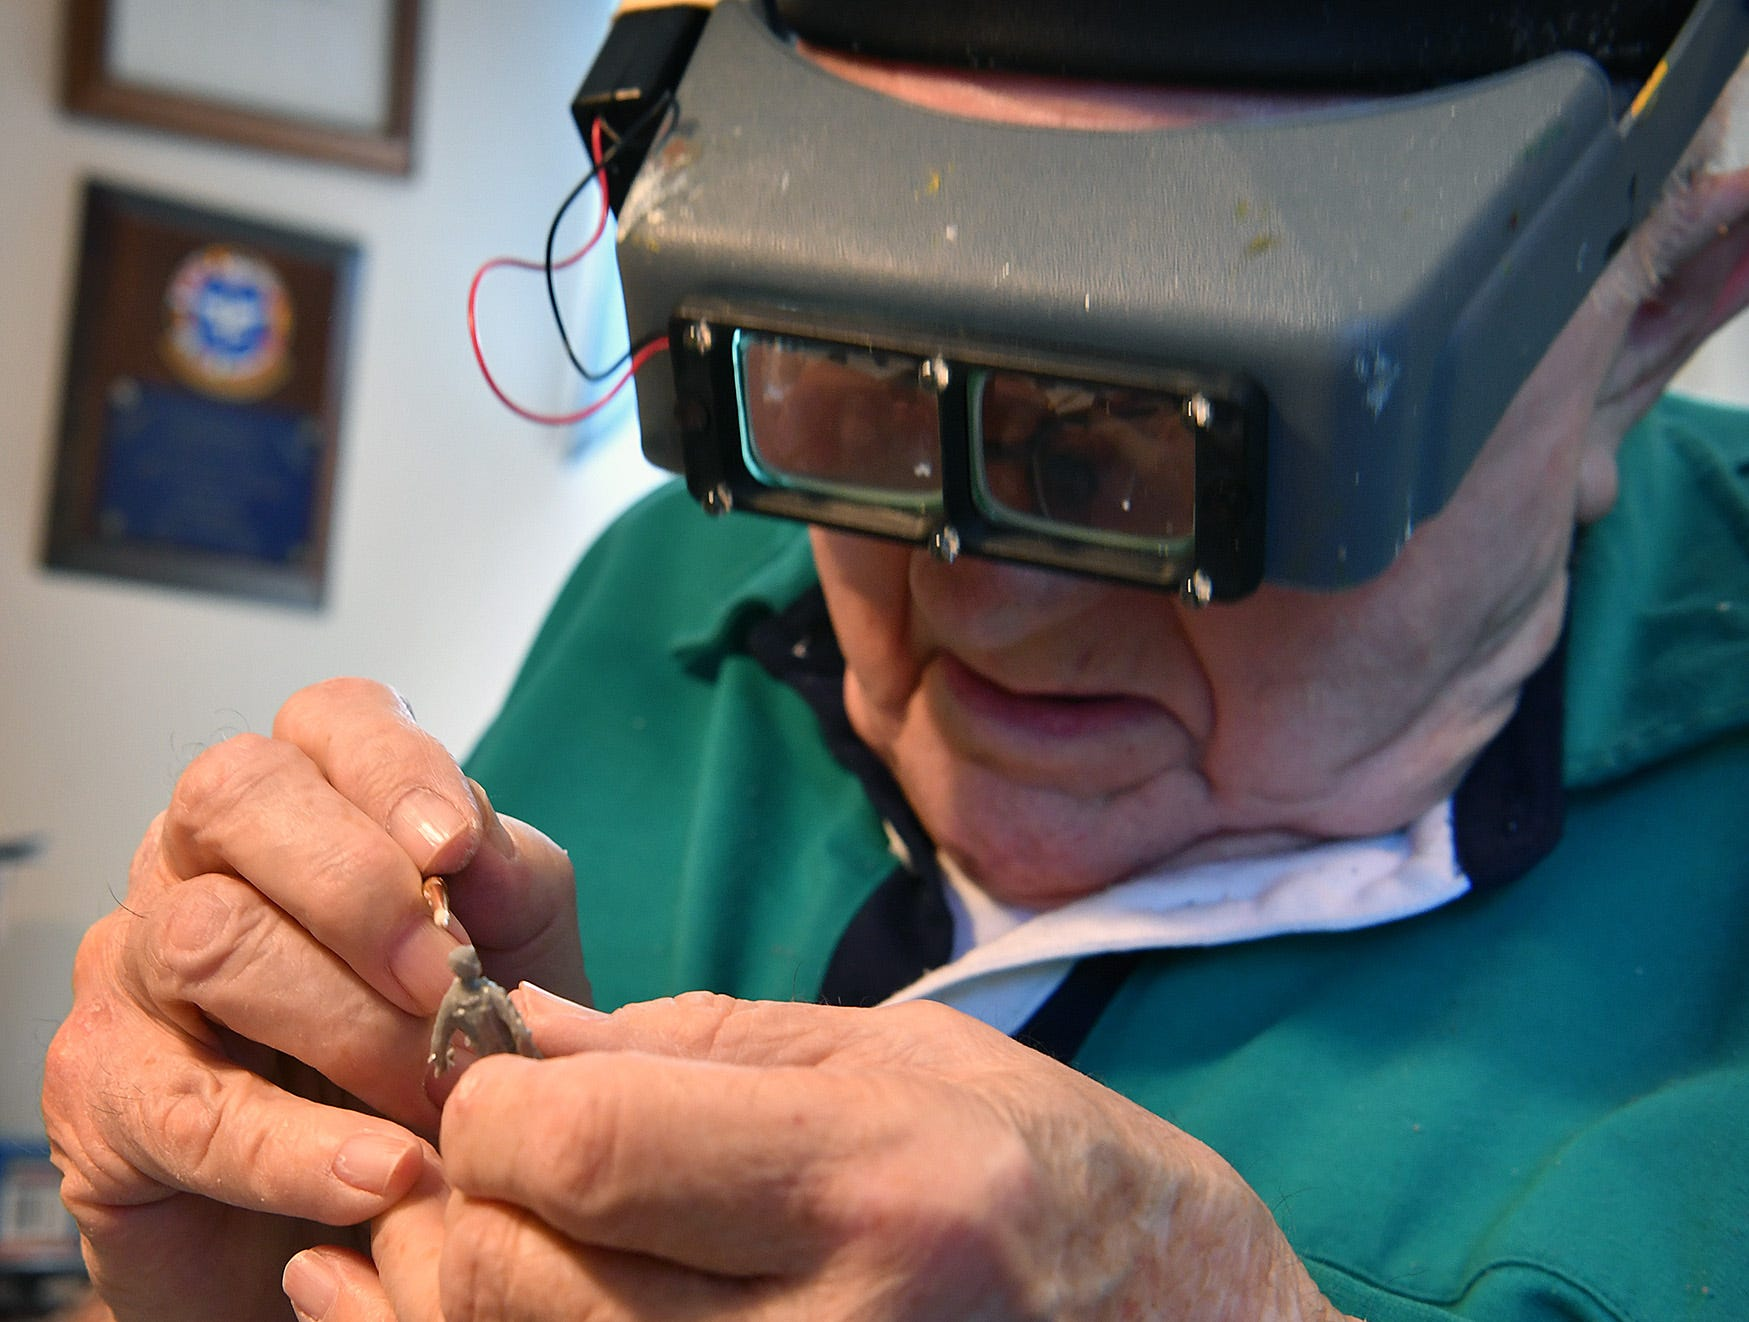 Using magnifyers and a fine-tipped paint brush, Jack Riddle applies painted details to a figure that goes with the military aircraft model he is building. Riddle has built about 100 models since he began about 70 years ago.